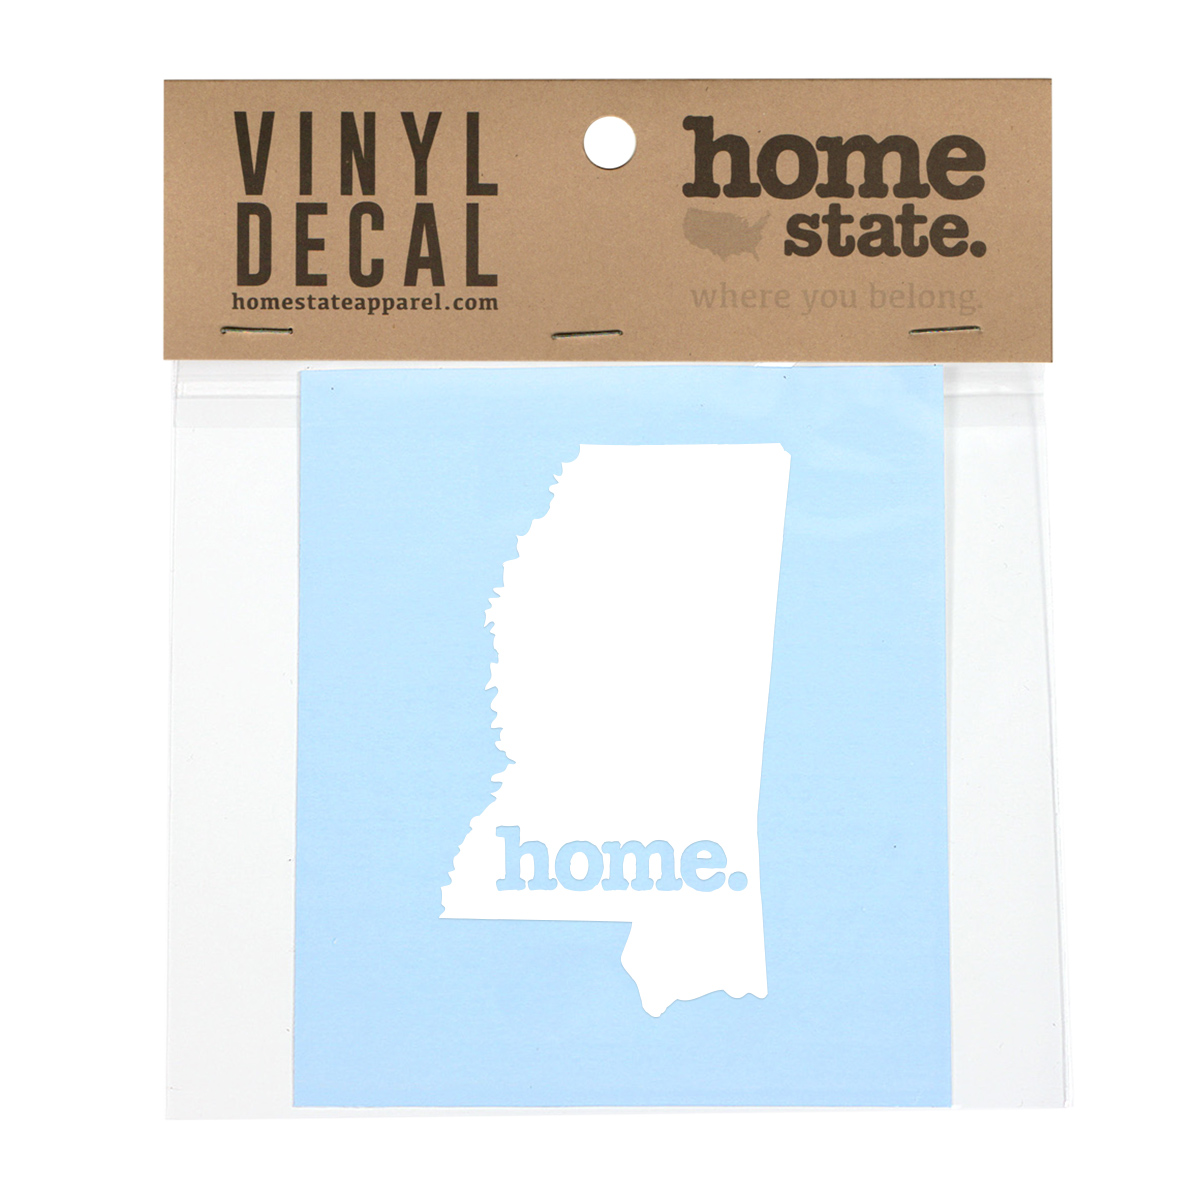 Vinyl-Decal-MS-Package.jpg